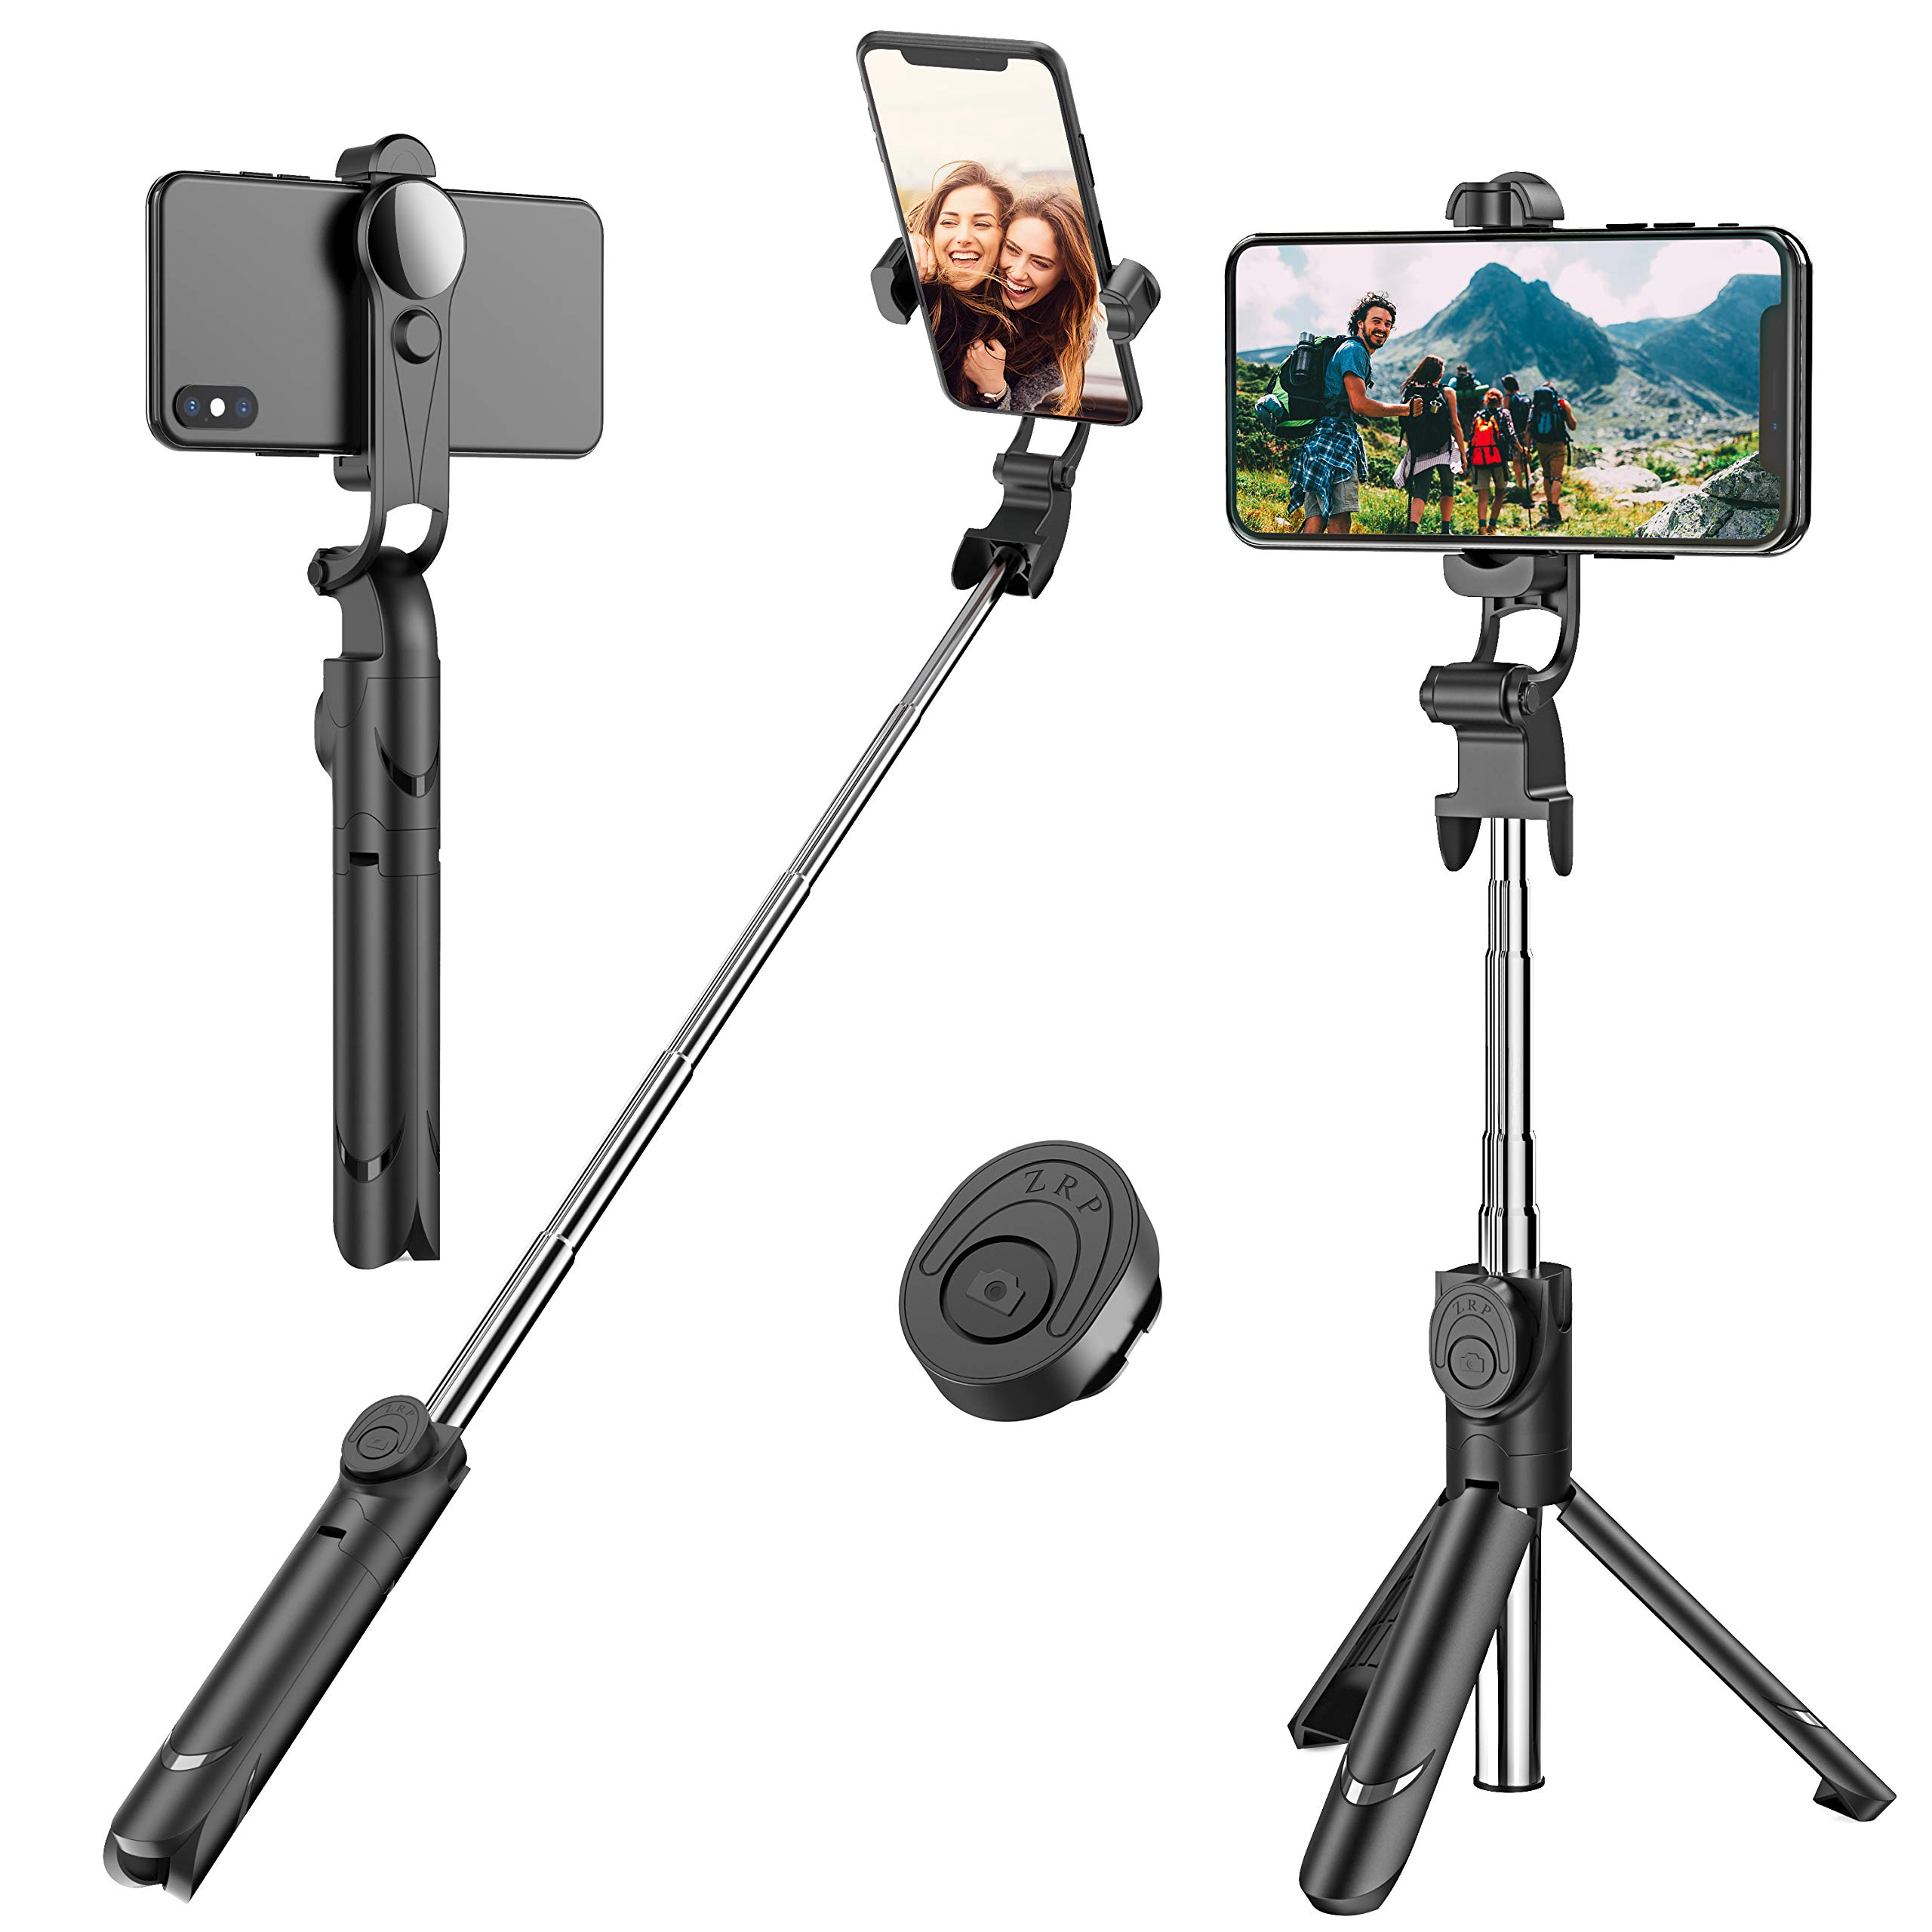 amazon.com - Selfie Stick, Extendable Selfie Stick Tripod with Detachable Wireless Remote and Tripod Stand Selfie Stick for iPhone X/iPhone 8/8 Plus/iPhone 7/7 Plus, Galaxy S9/S9 Plus/S8/S8 Plus/Note8,Huawei,More